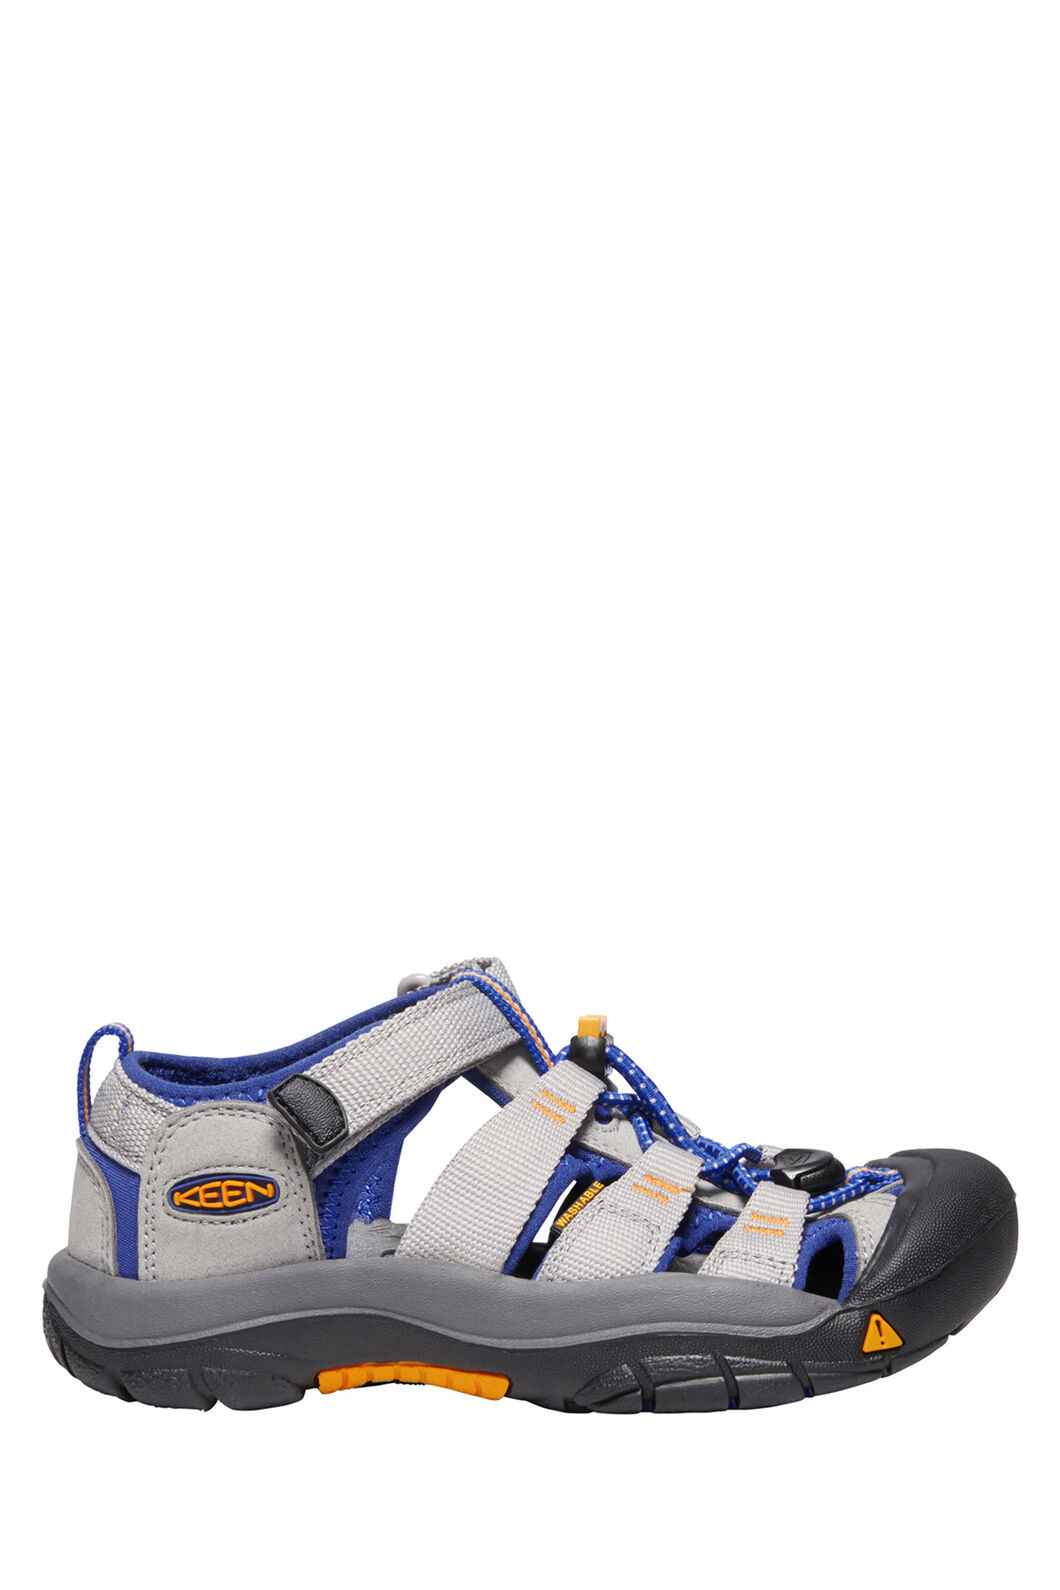 KEEN Newport H2 Sandals — Youth, Paloma/Galaxy Blue, hi-res